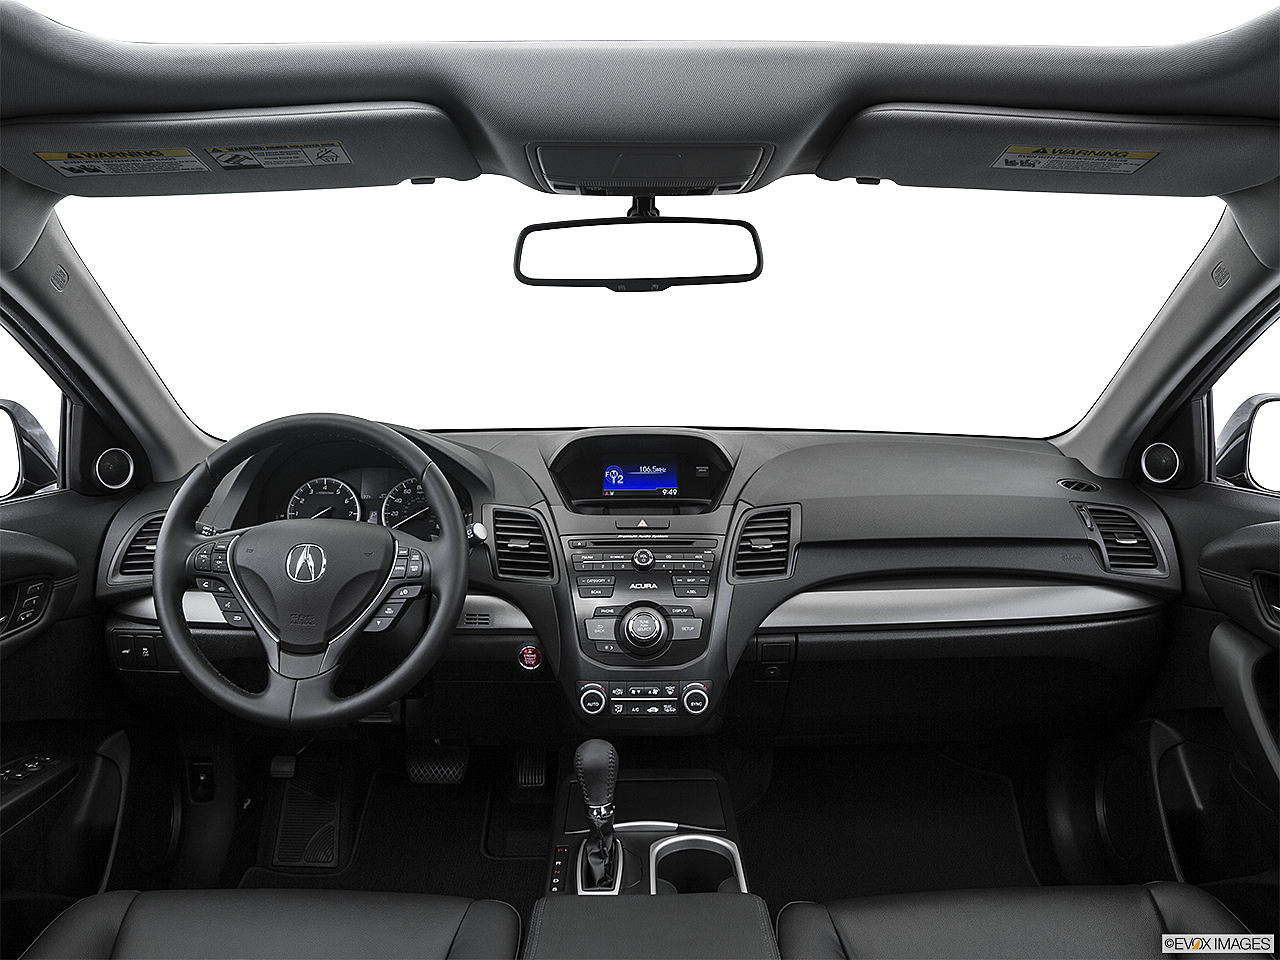 2016 Acura RDX, centered wide dash shot